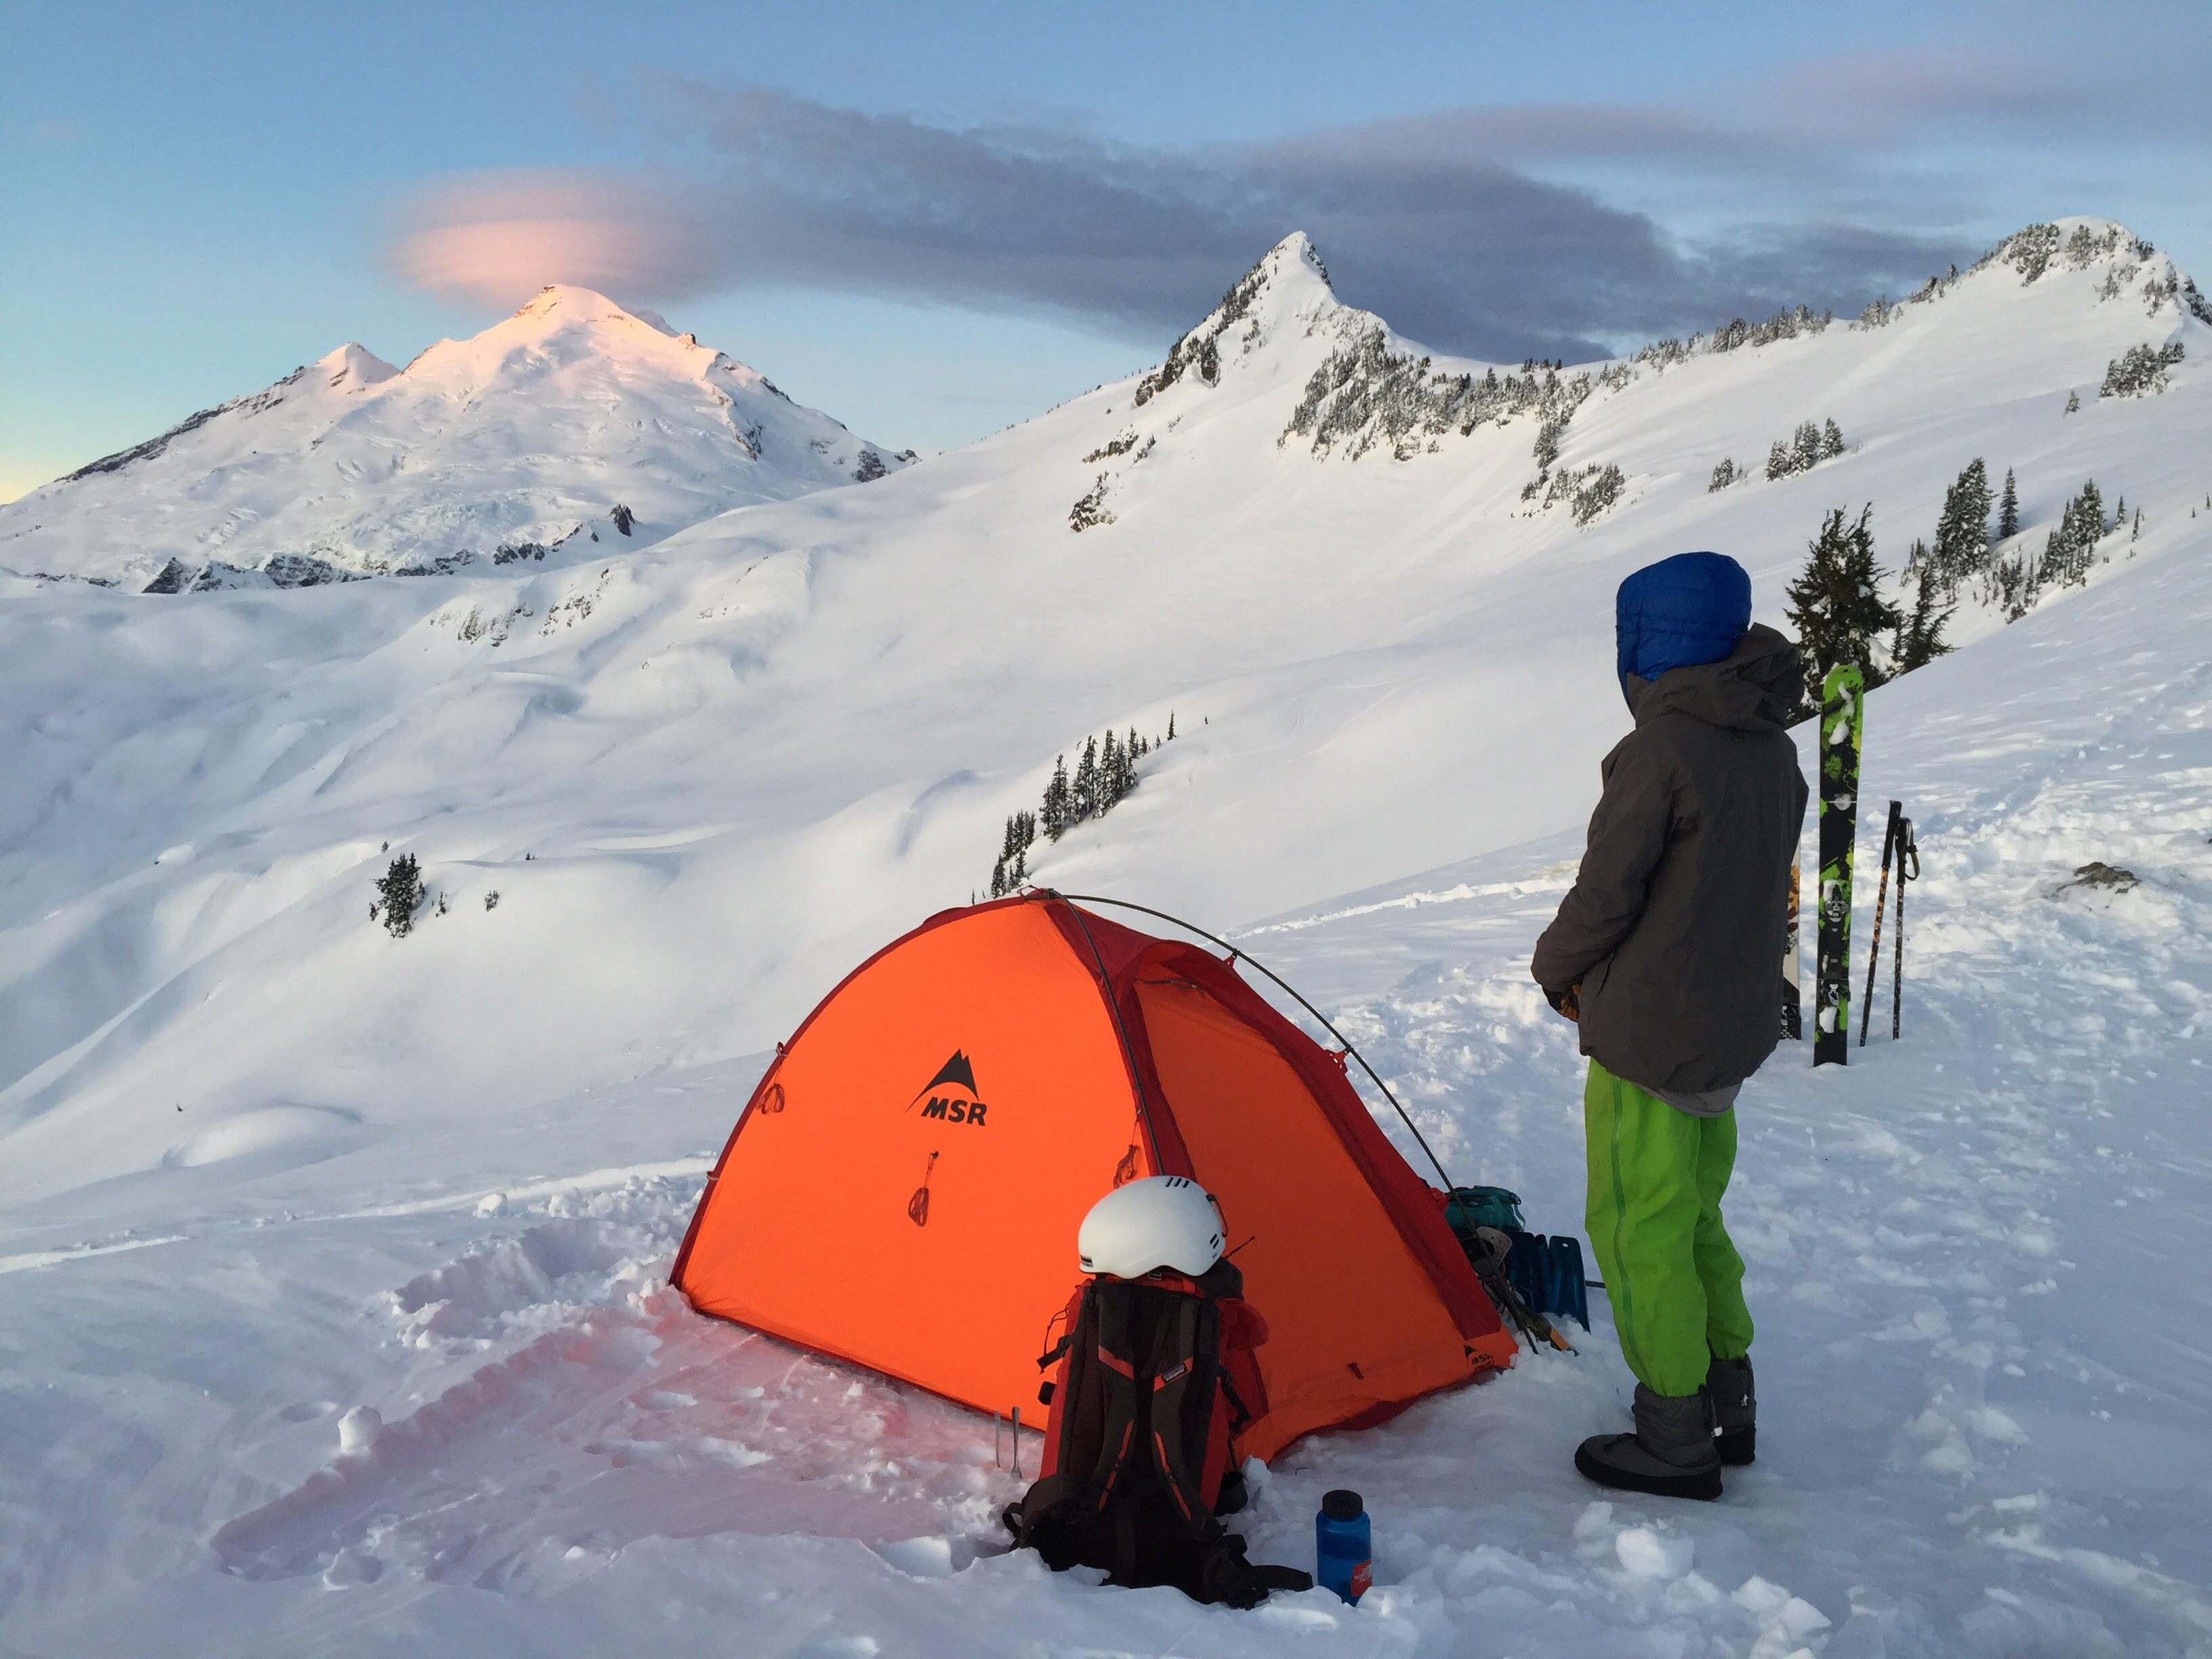 Viewing the sunrise on Mt. Baker with the MSR Advance Pro 2 Ultralight tent. [Photo] Mallorie Estenson